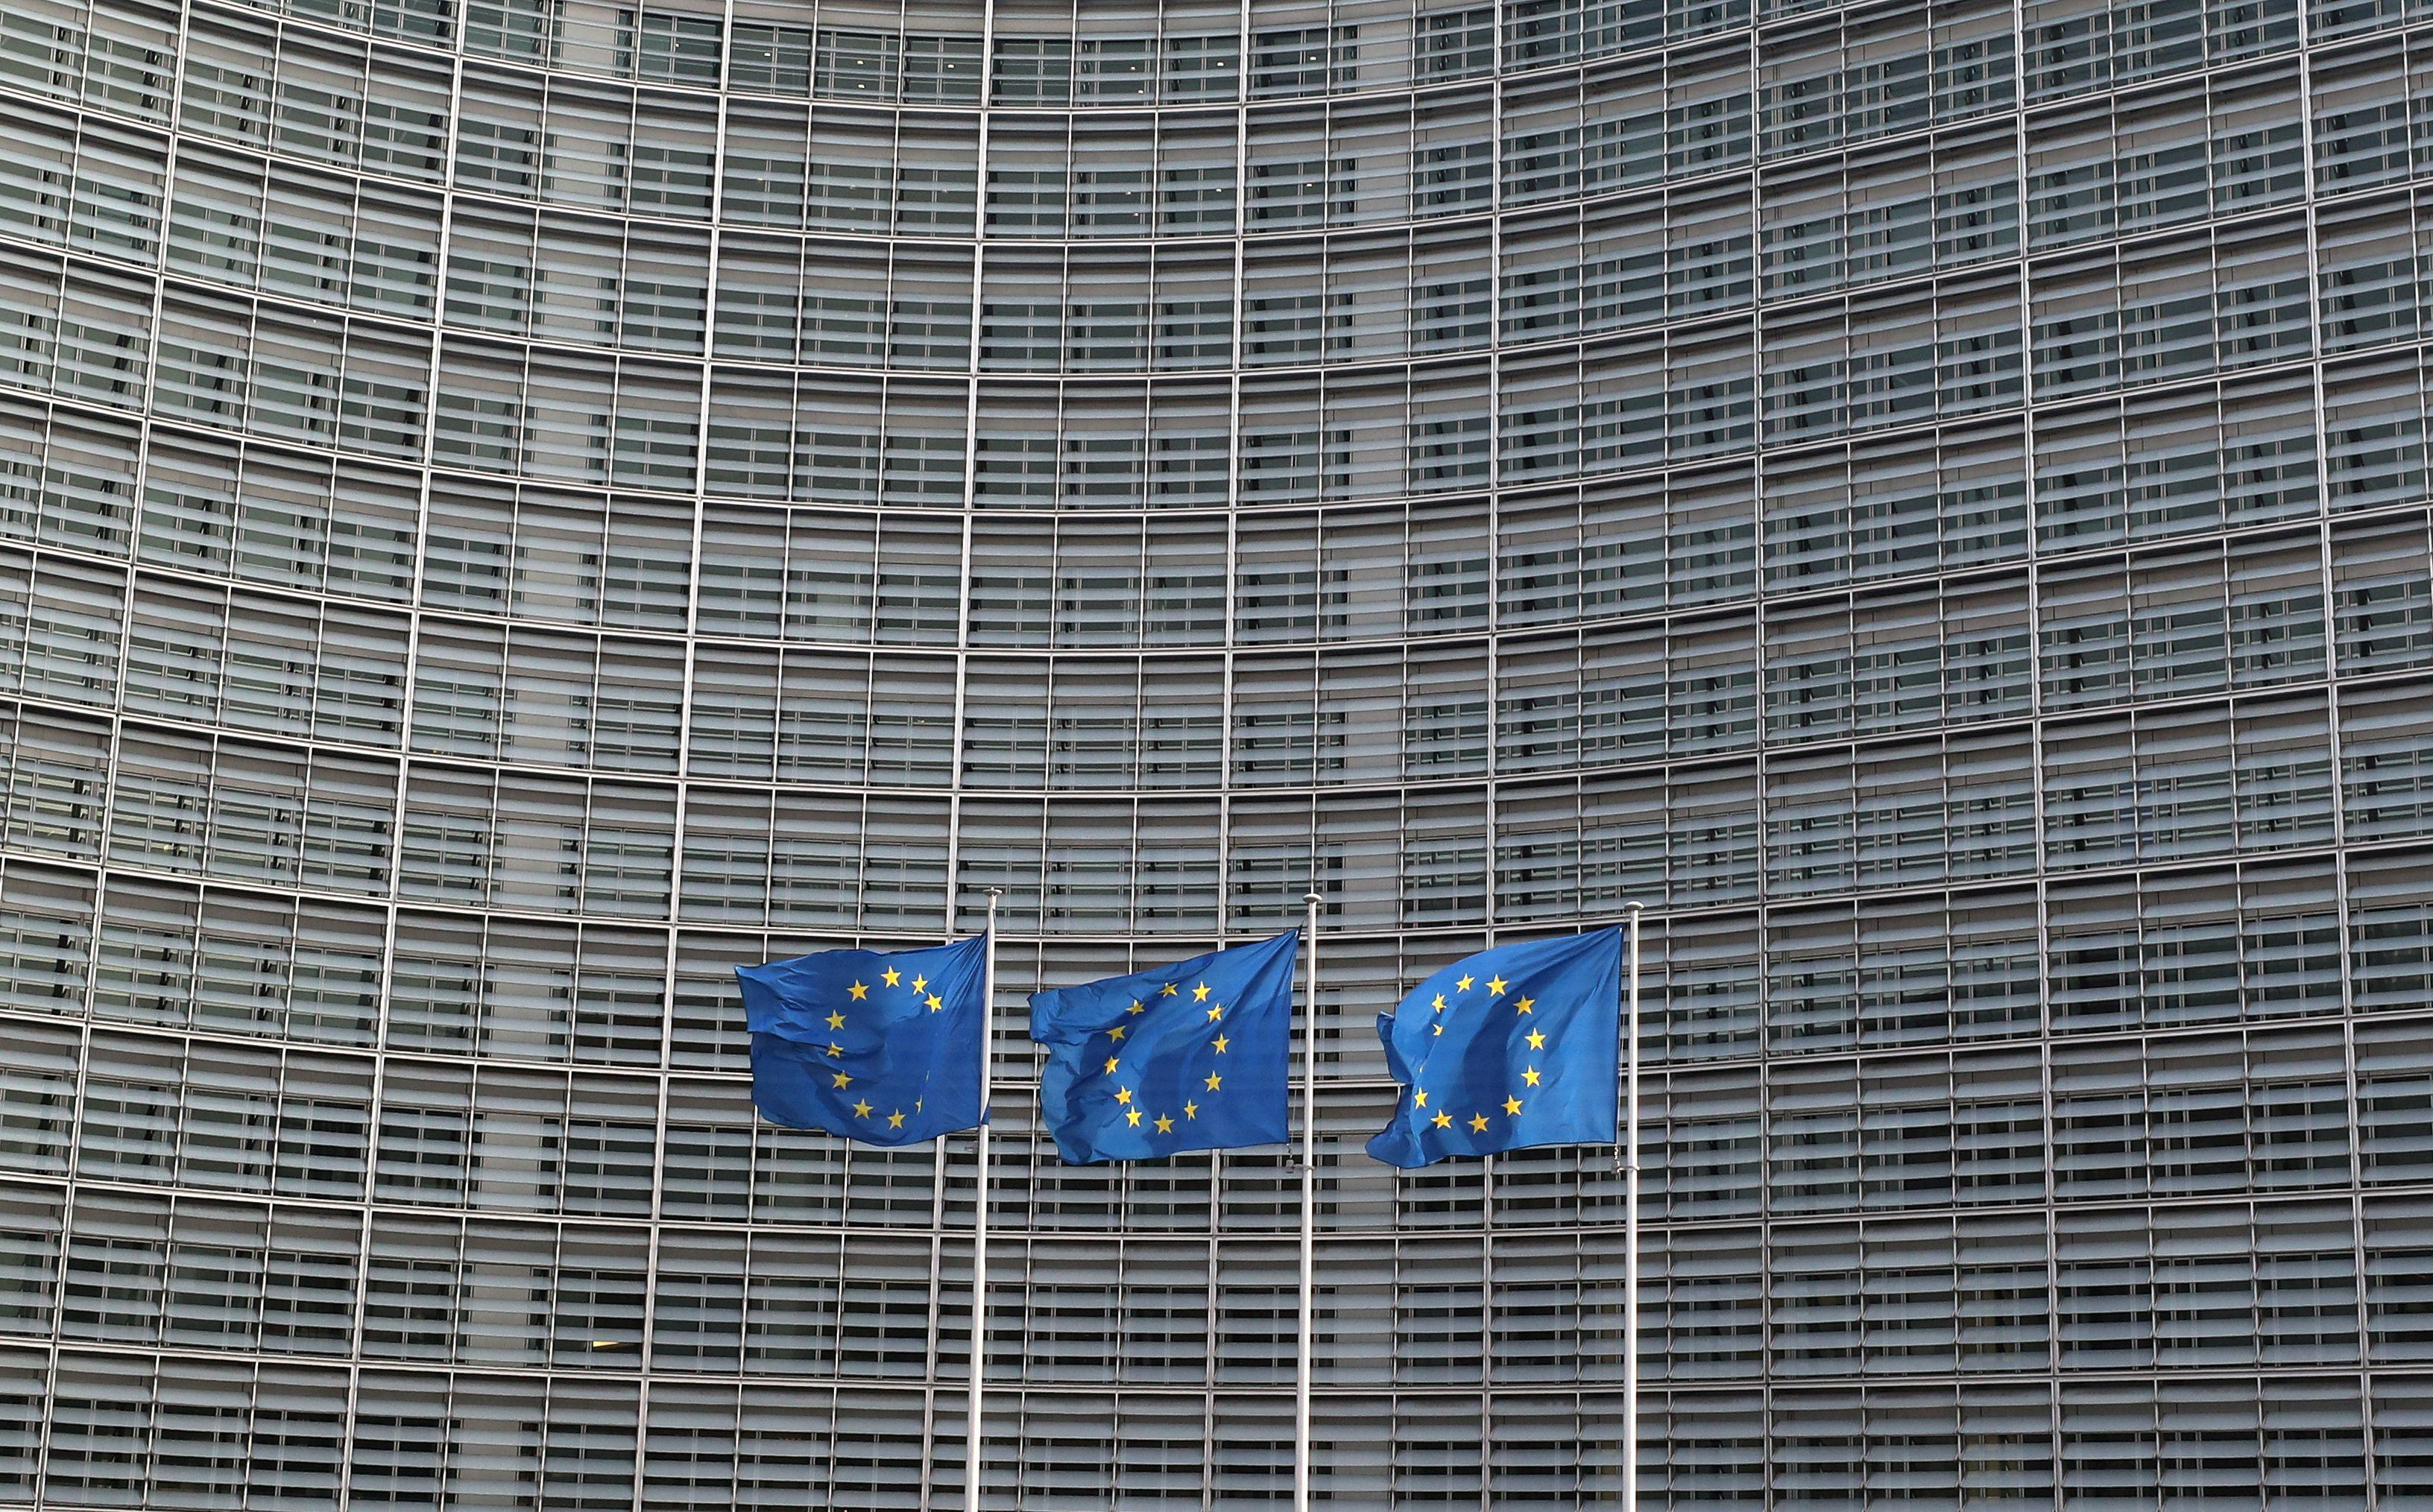 EU plans more protectionist antitrust rules, data sharing in policy...